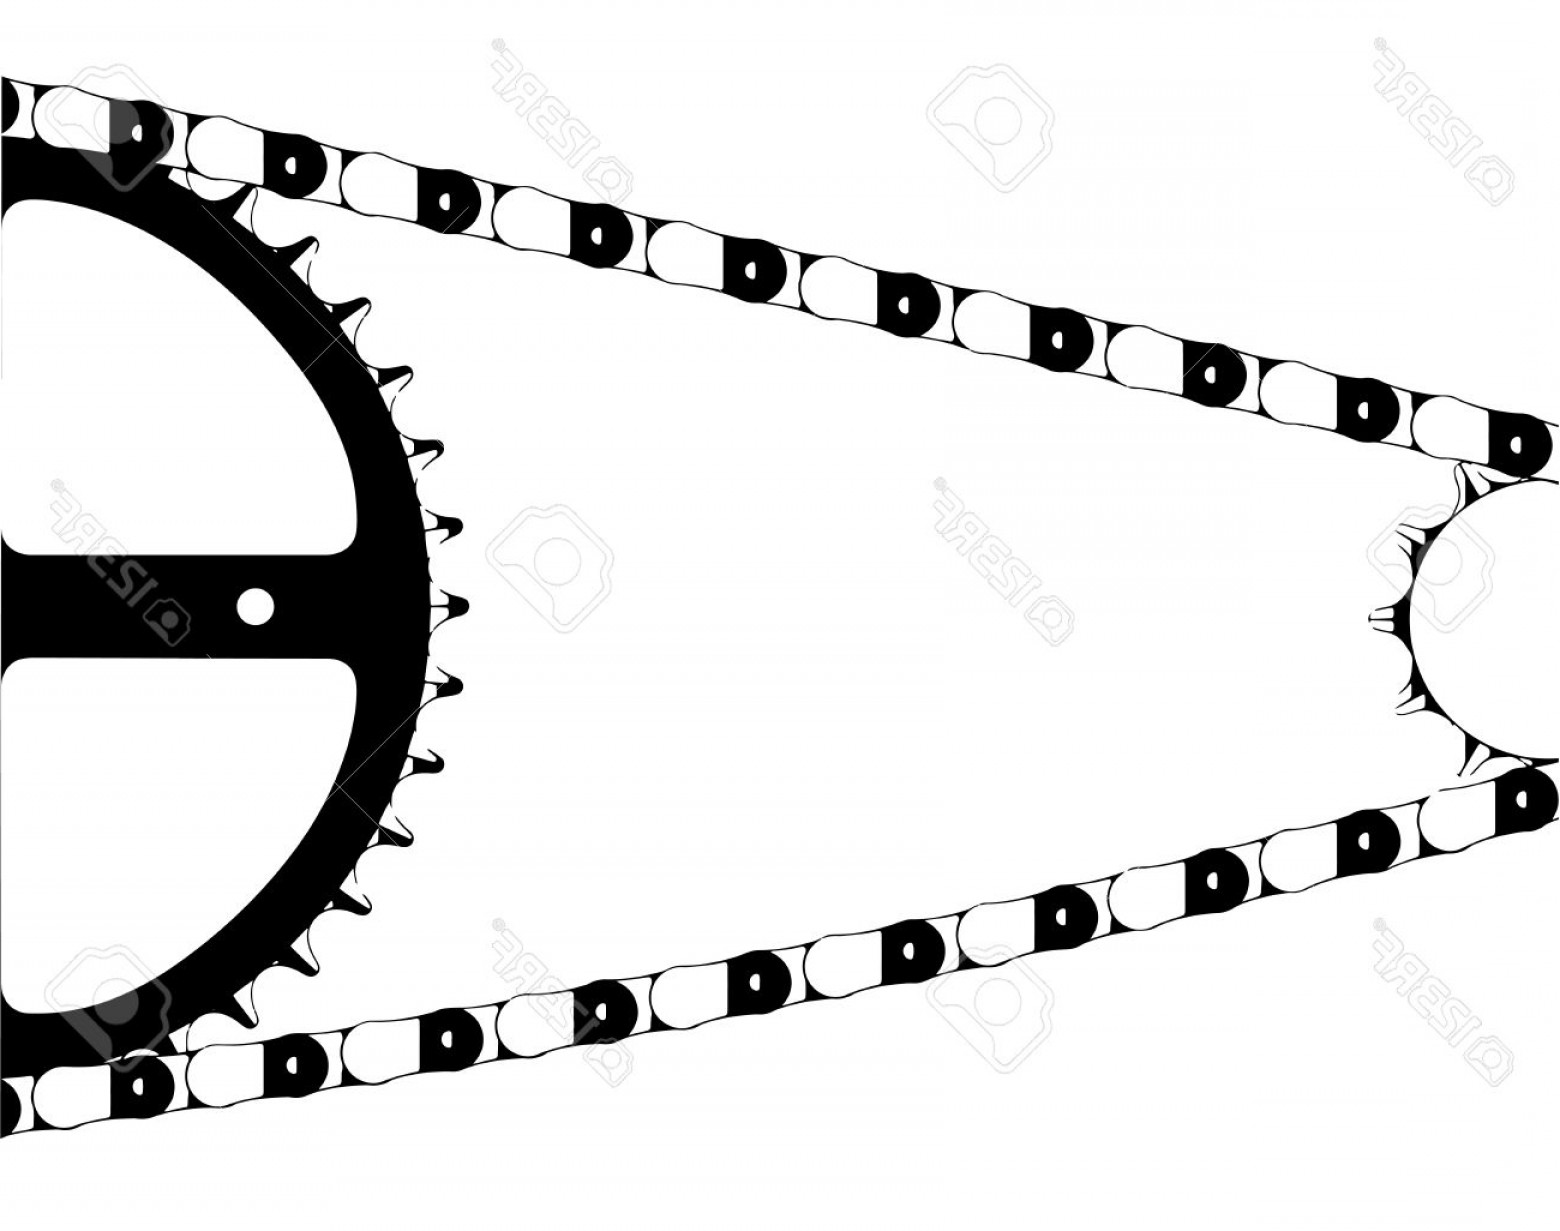 Bicycle Crank Vector Of Artwork: Photostock Vector A Typical Bicycle Chain And Gears Isolated On A White Background